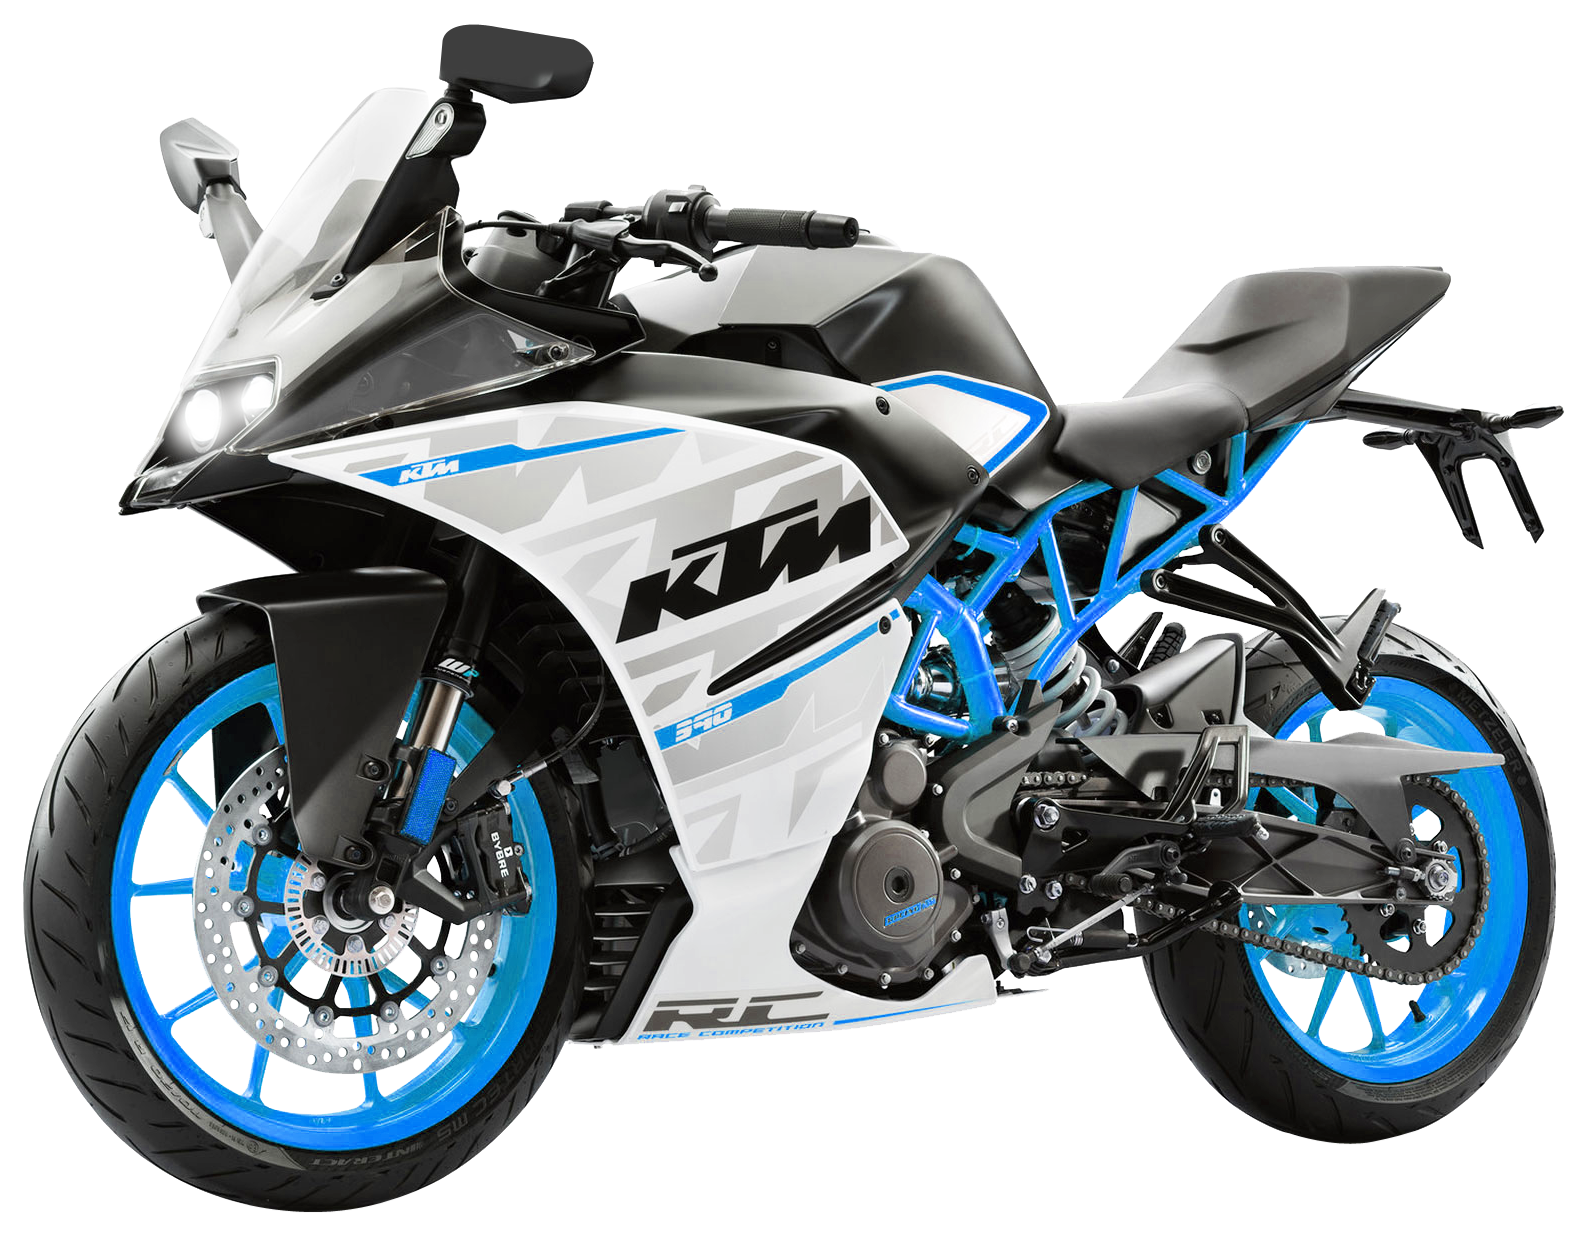 Png images download. New hd bikes for